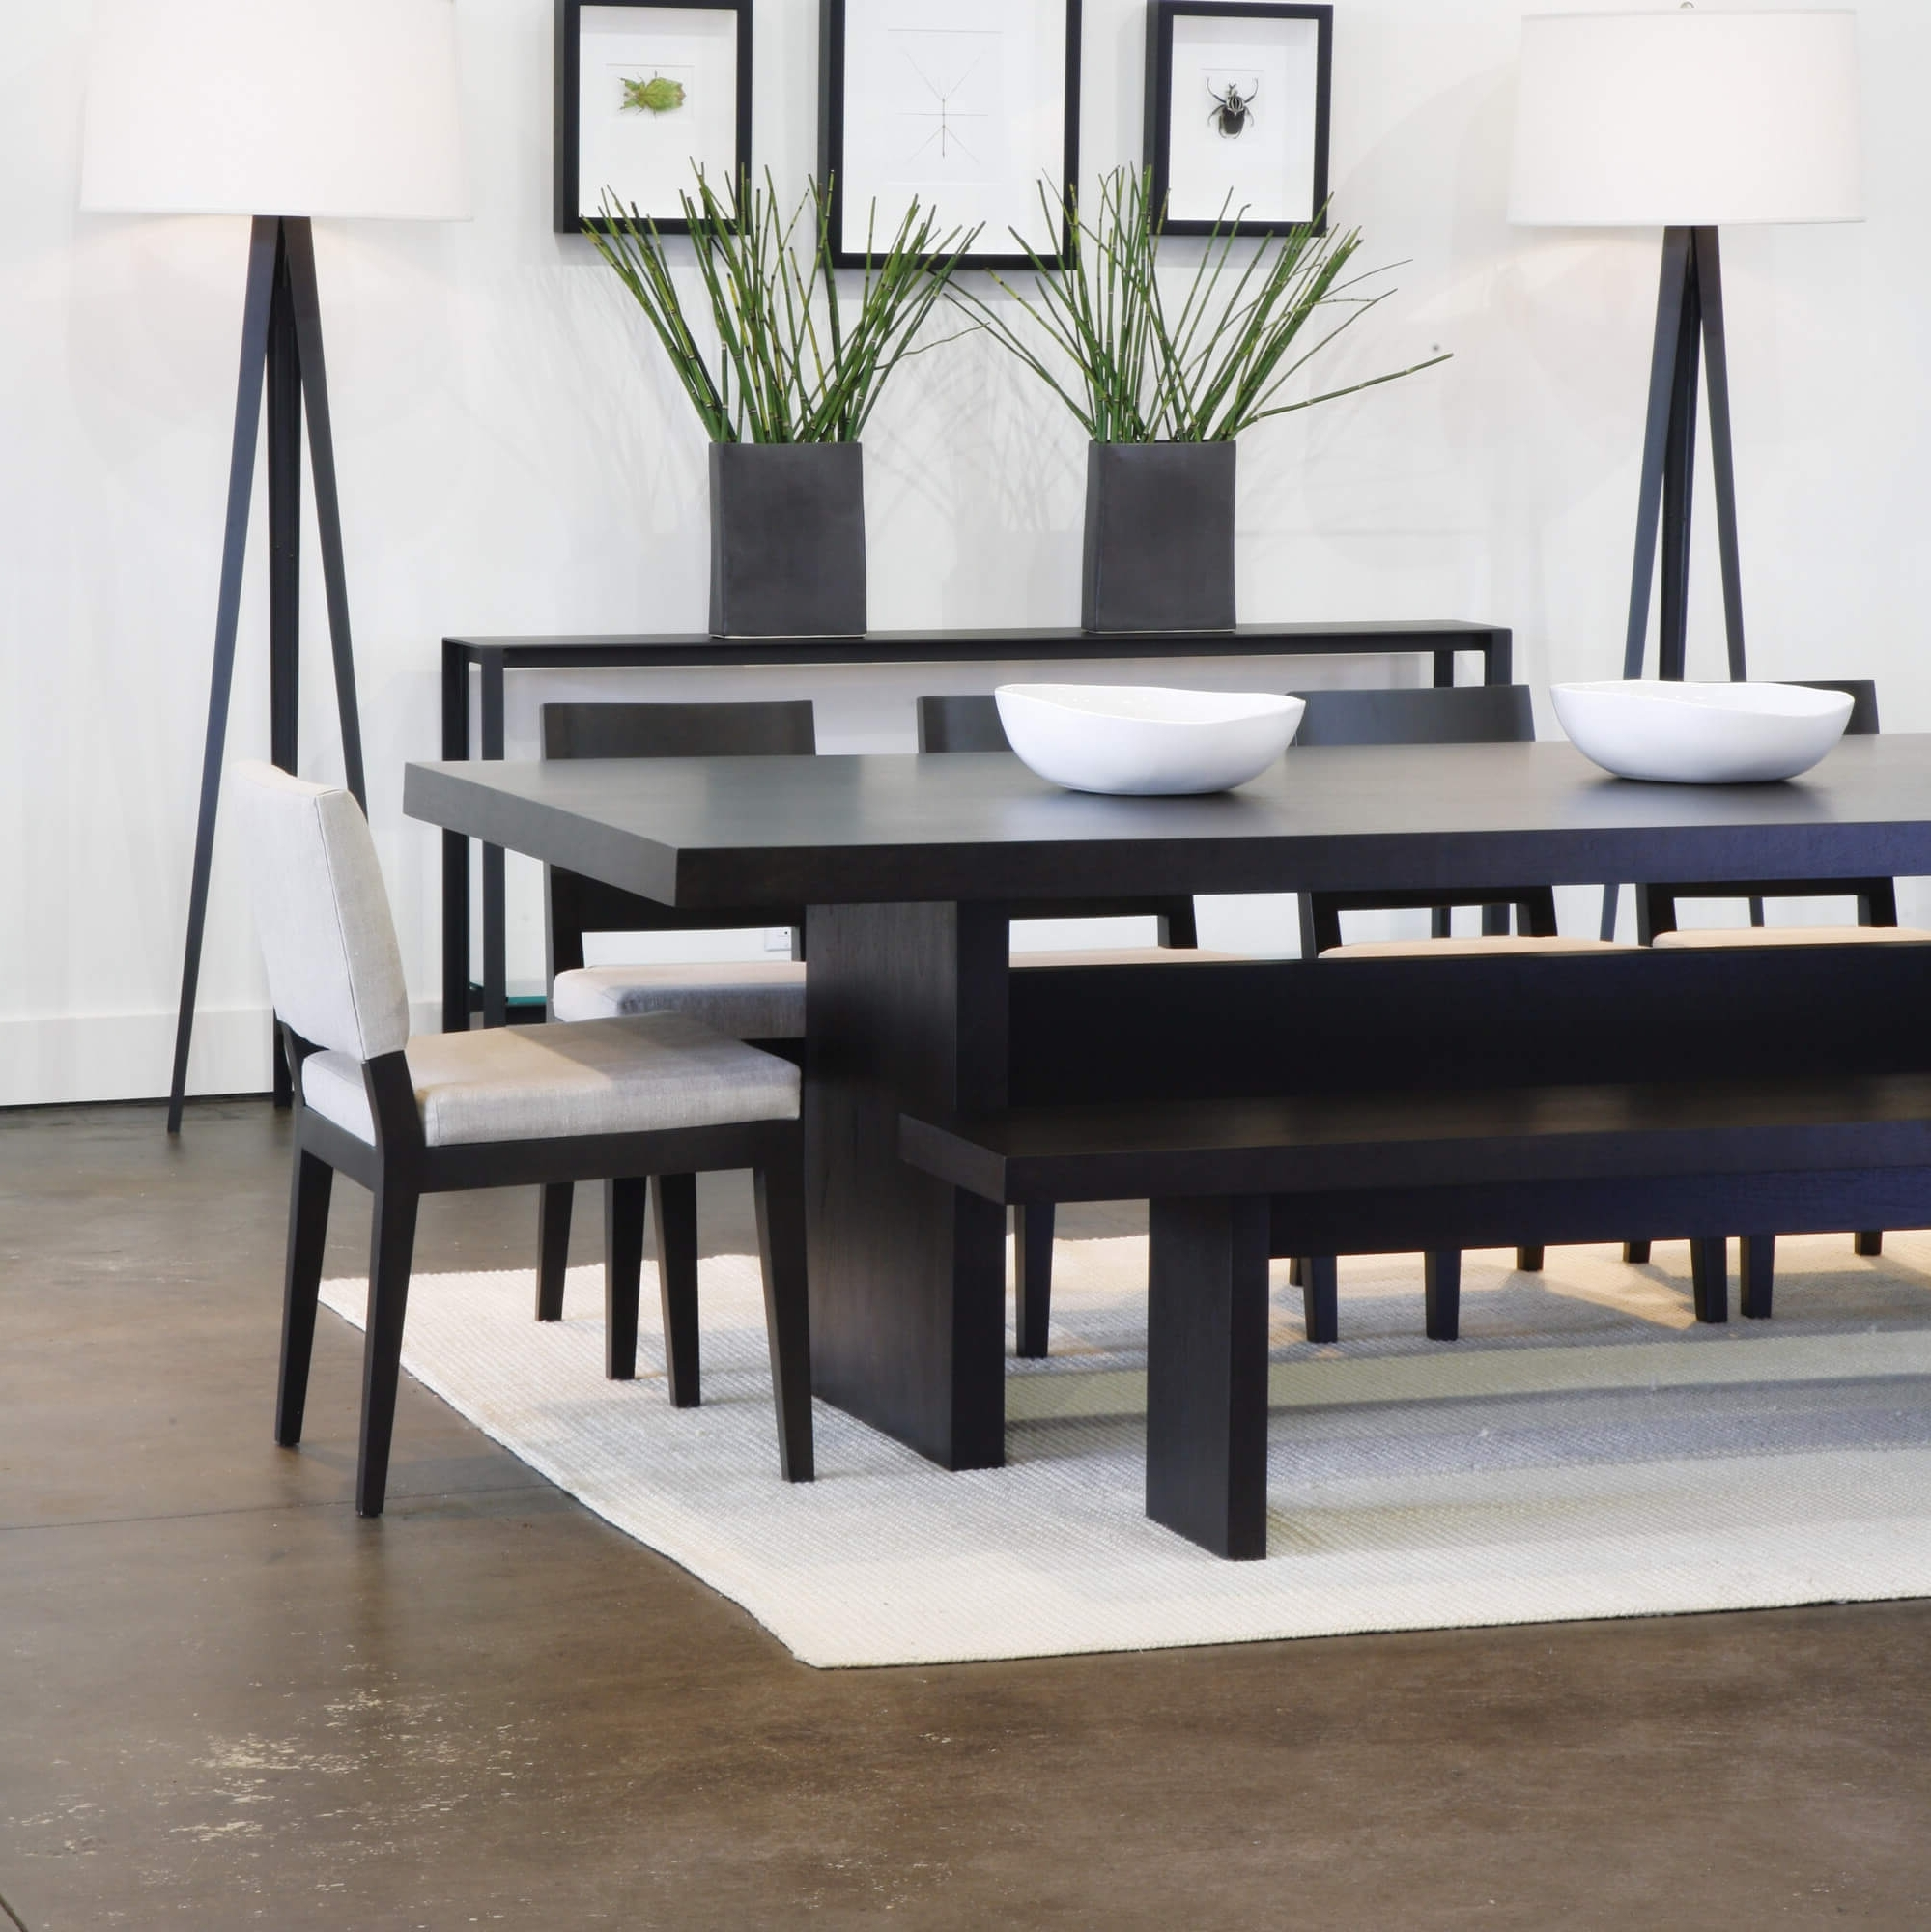 Sleek Dining Tables With Regard To Well Known 26 Dining Room Sets (Big And Small) With Bench Seating (2018) (View 19 of 25)